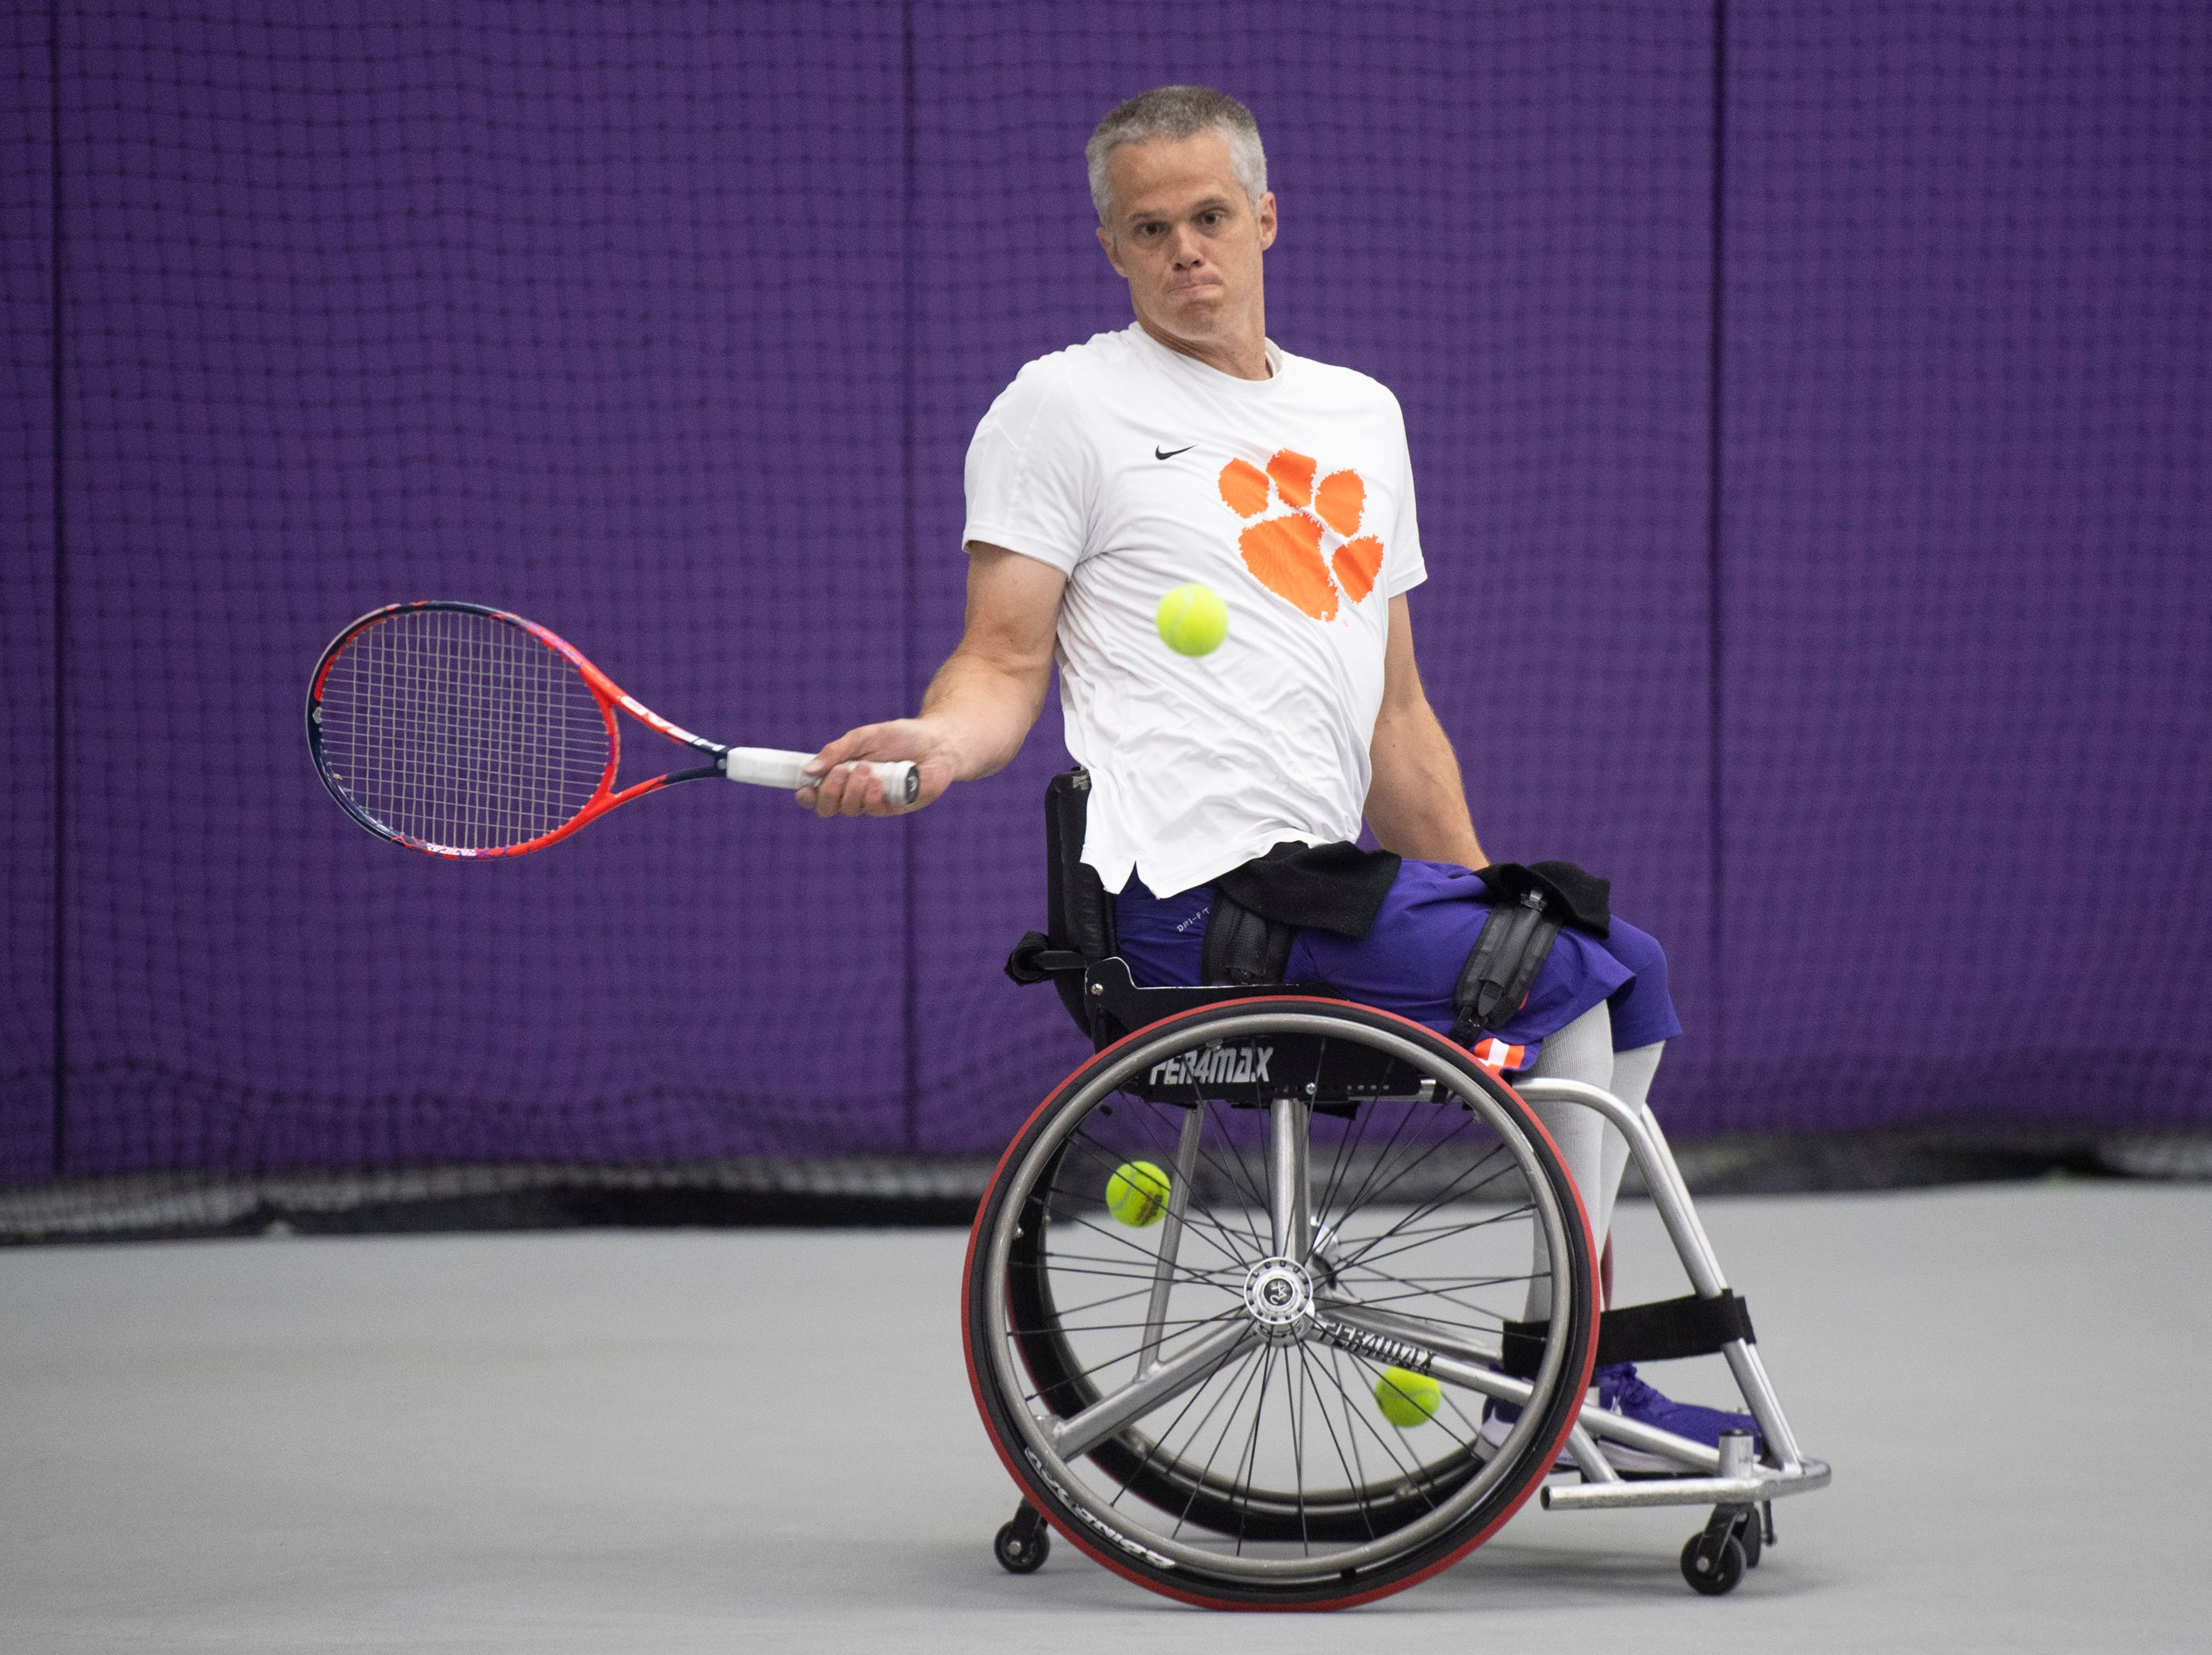 Jeff Townsend hits during tennis practice at Clemson University Friday, May 3, 2019.